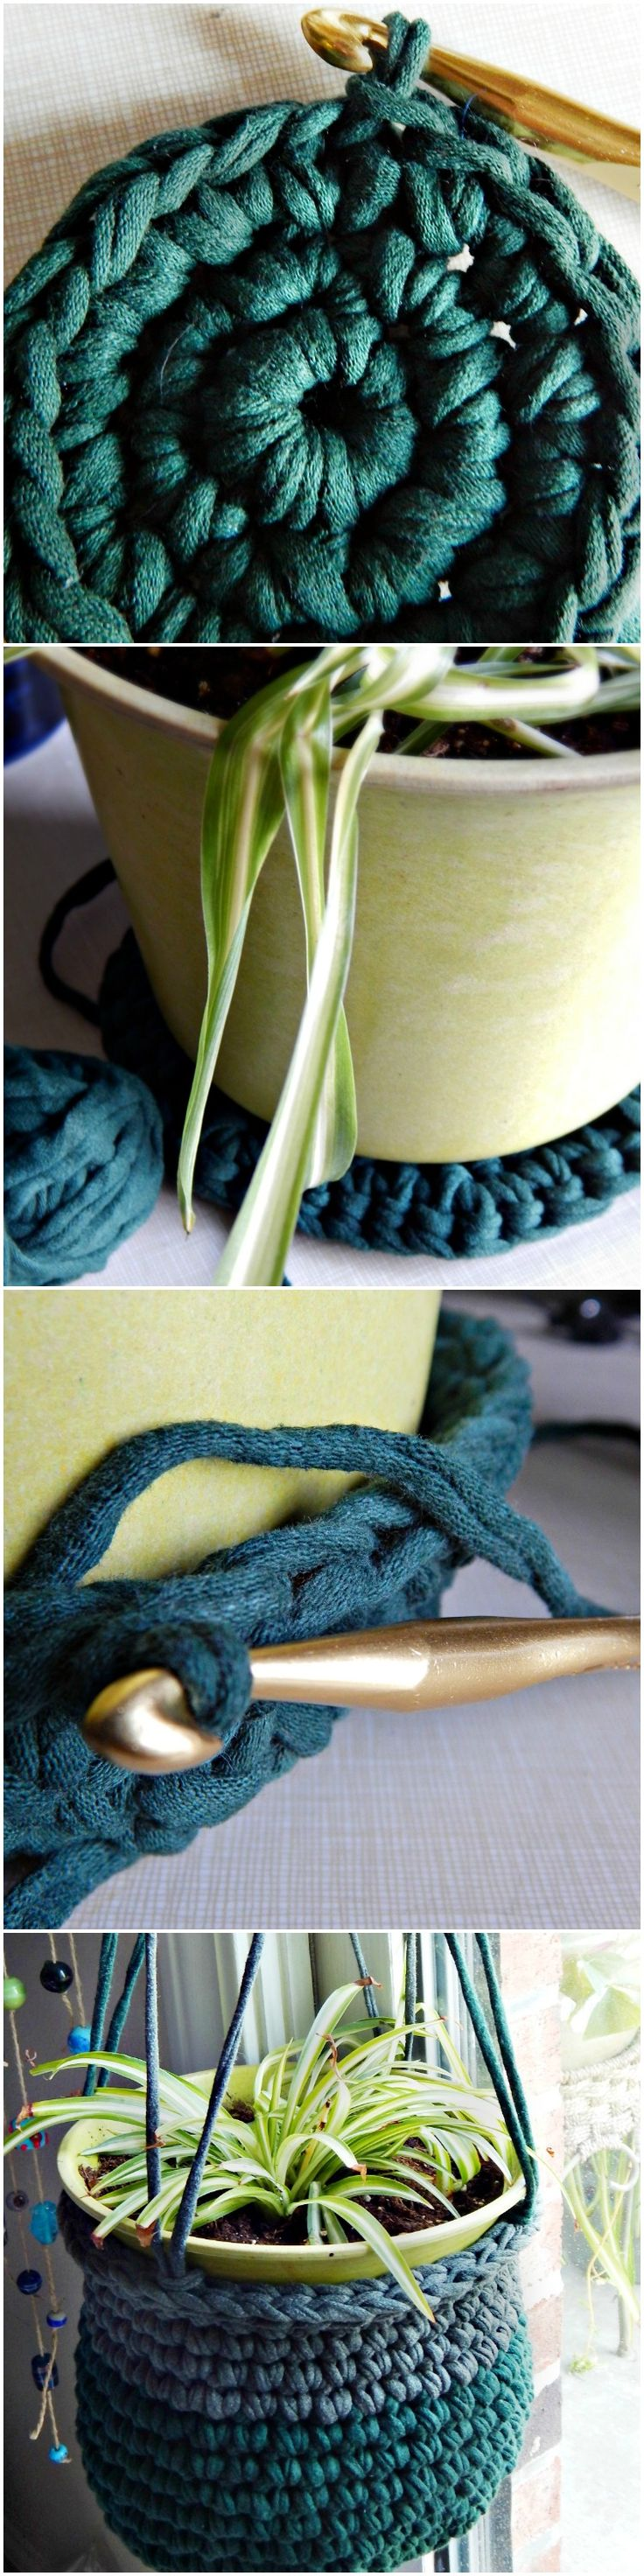 T-shirt Yarn Plant Hanger - Free Pattern from Morale Fiber Blog